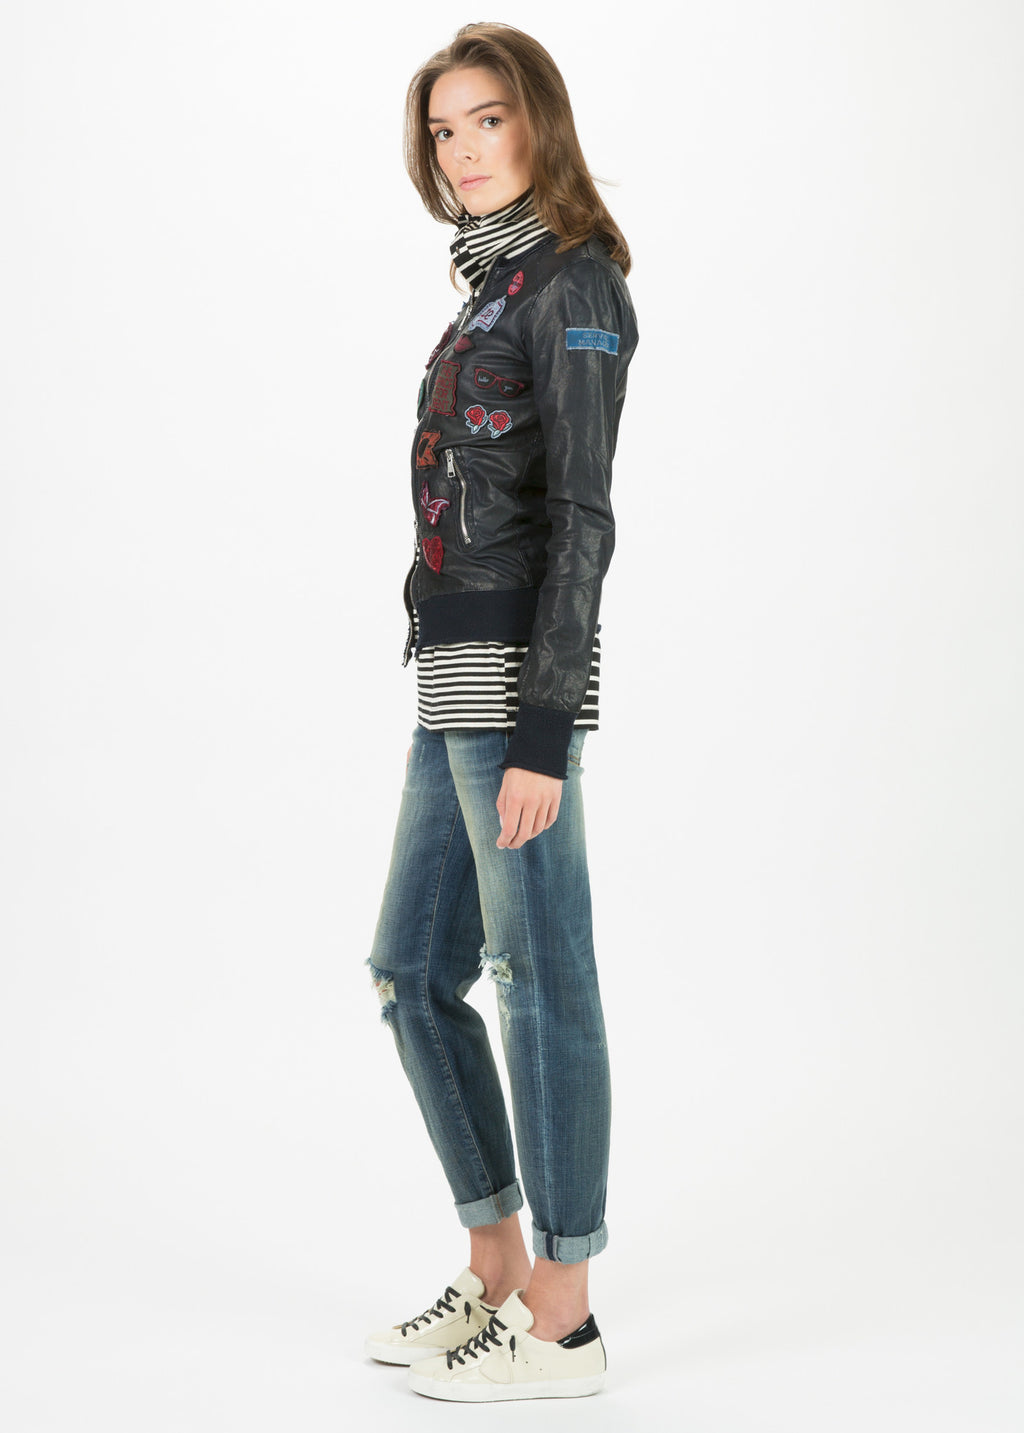 Knit Hem Leather Jacket with Patches